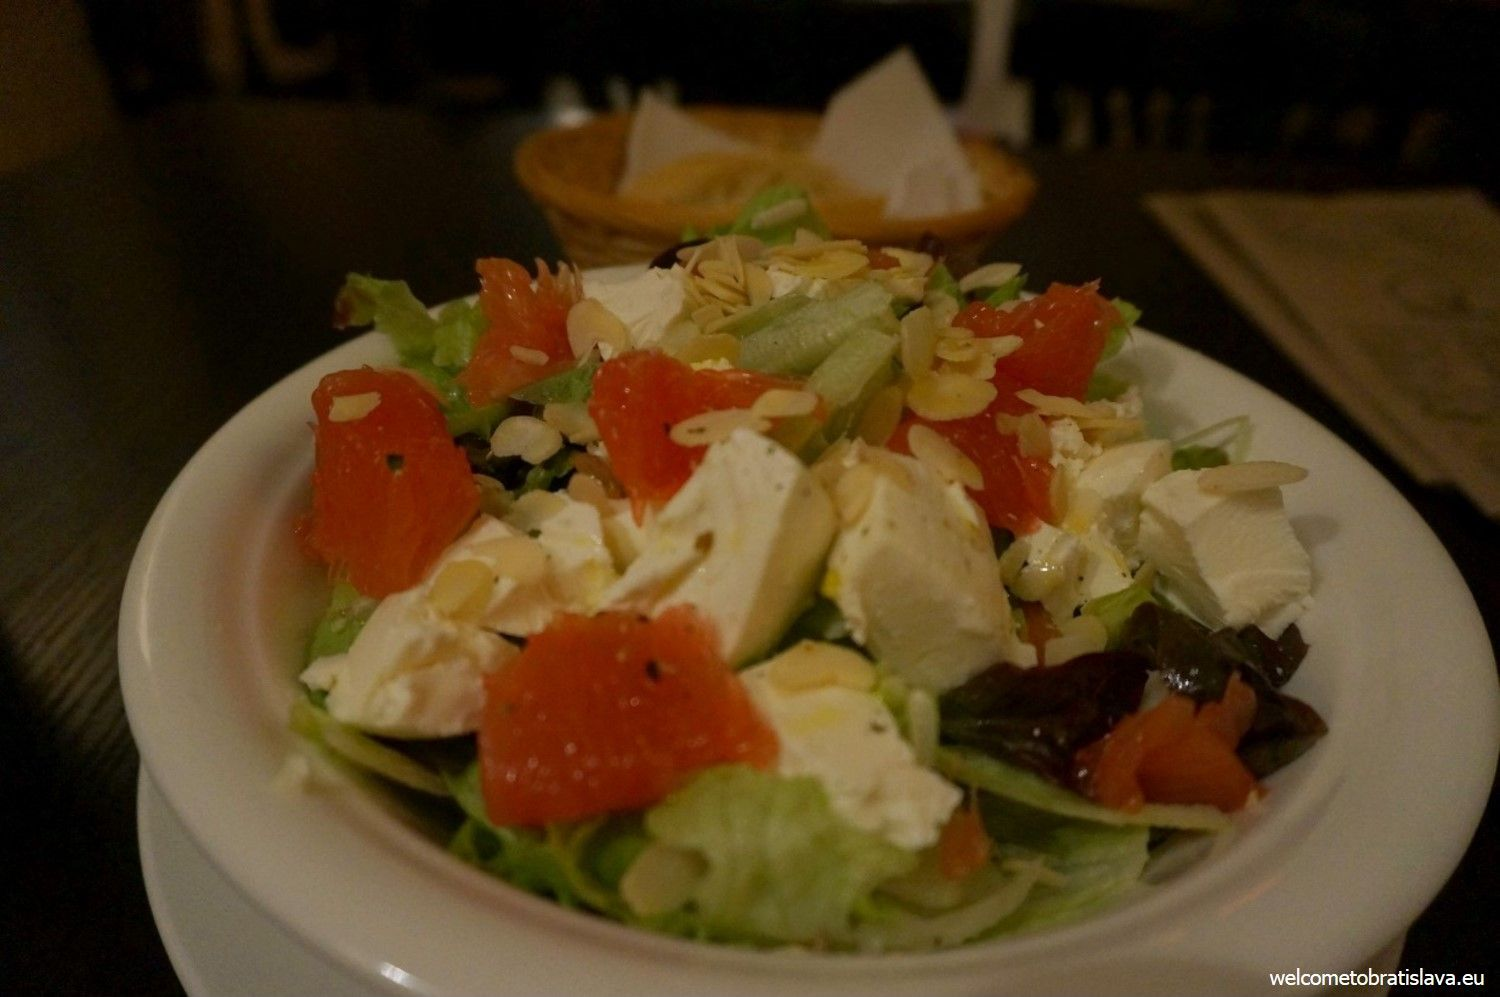 The goat cheese salad with almonds and grapefruit